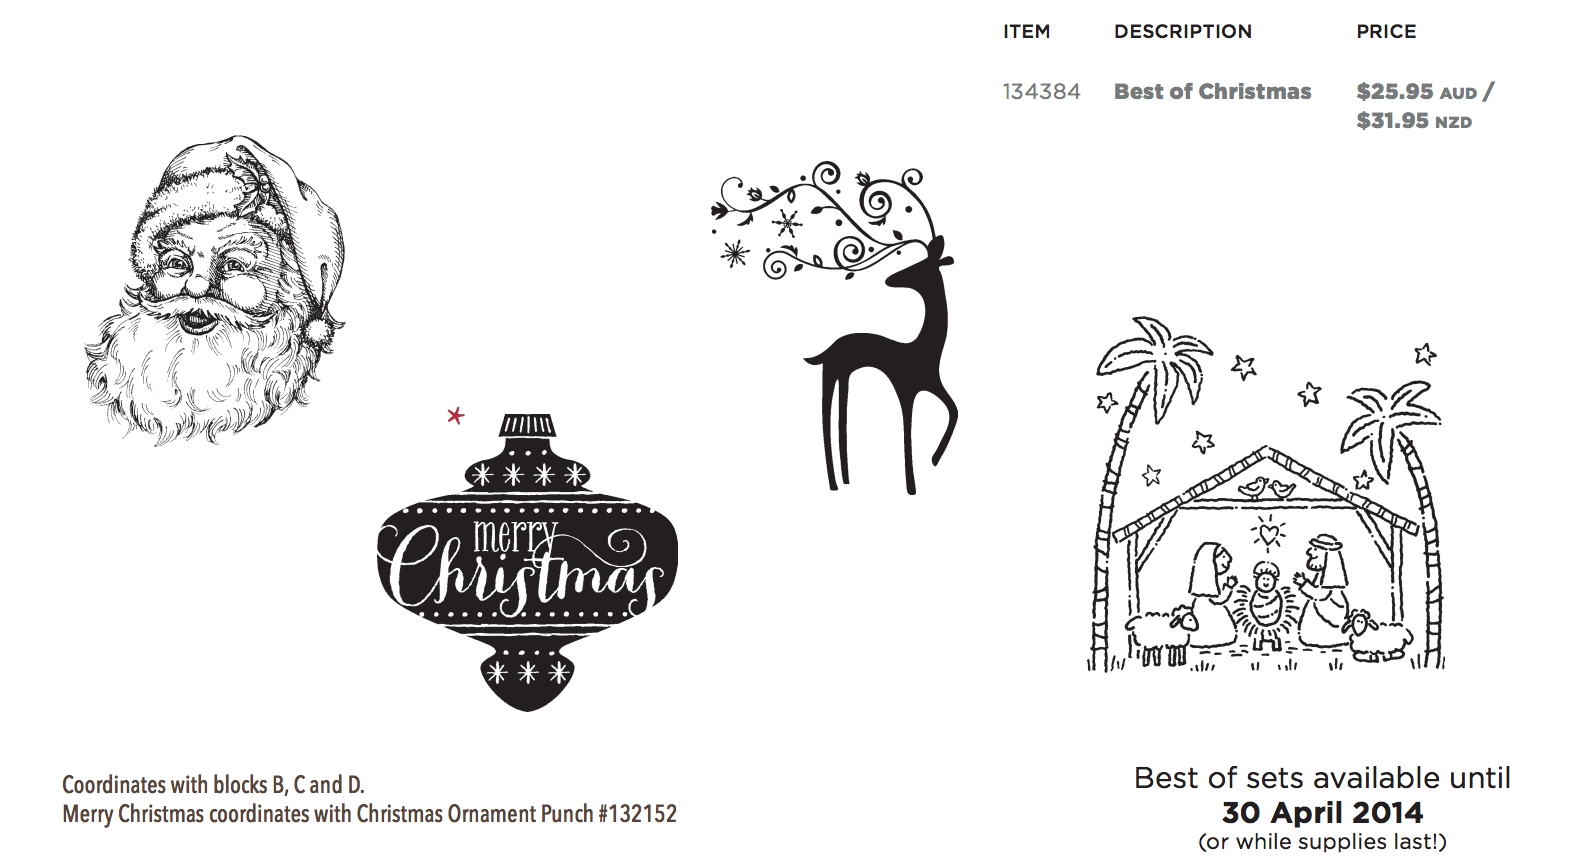 Nudge Nudge Ink Ink: Best of 25 Years: CHRISTMAS stamps